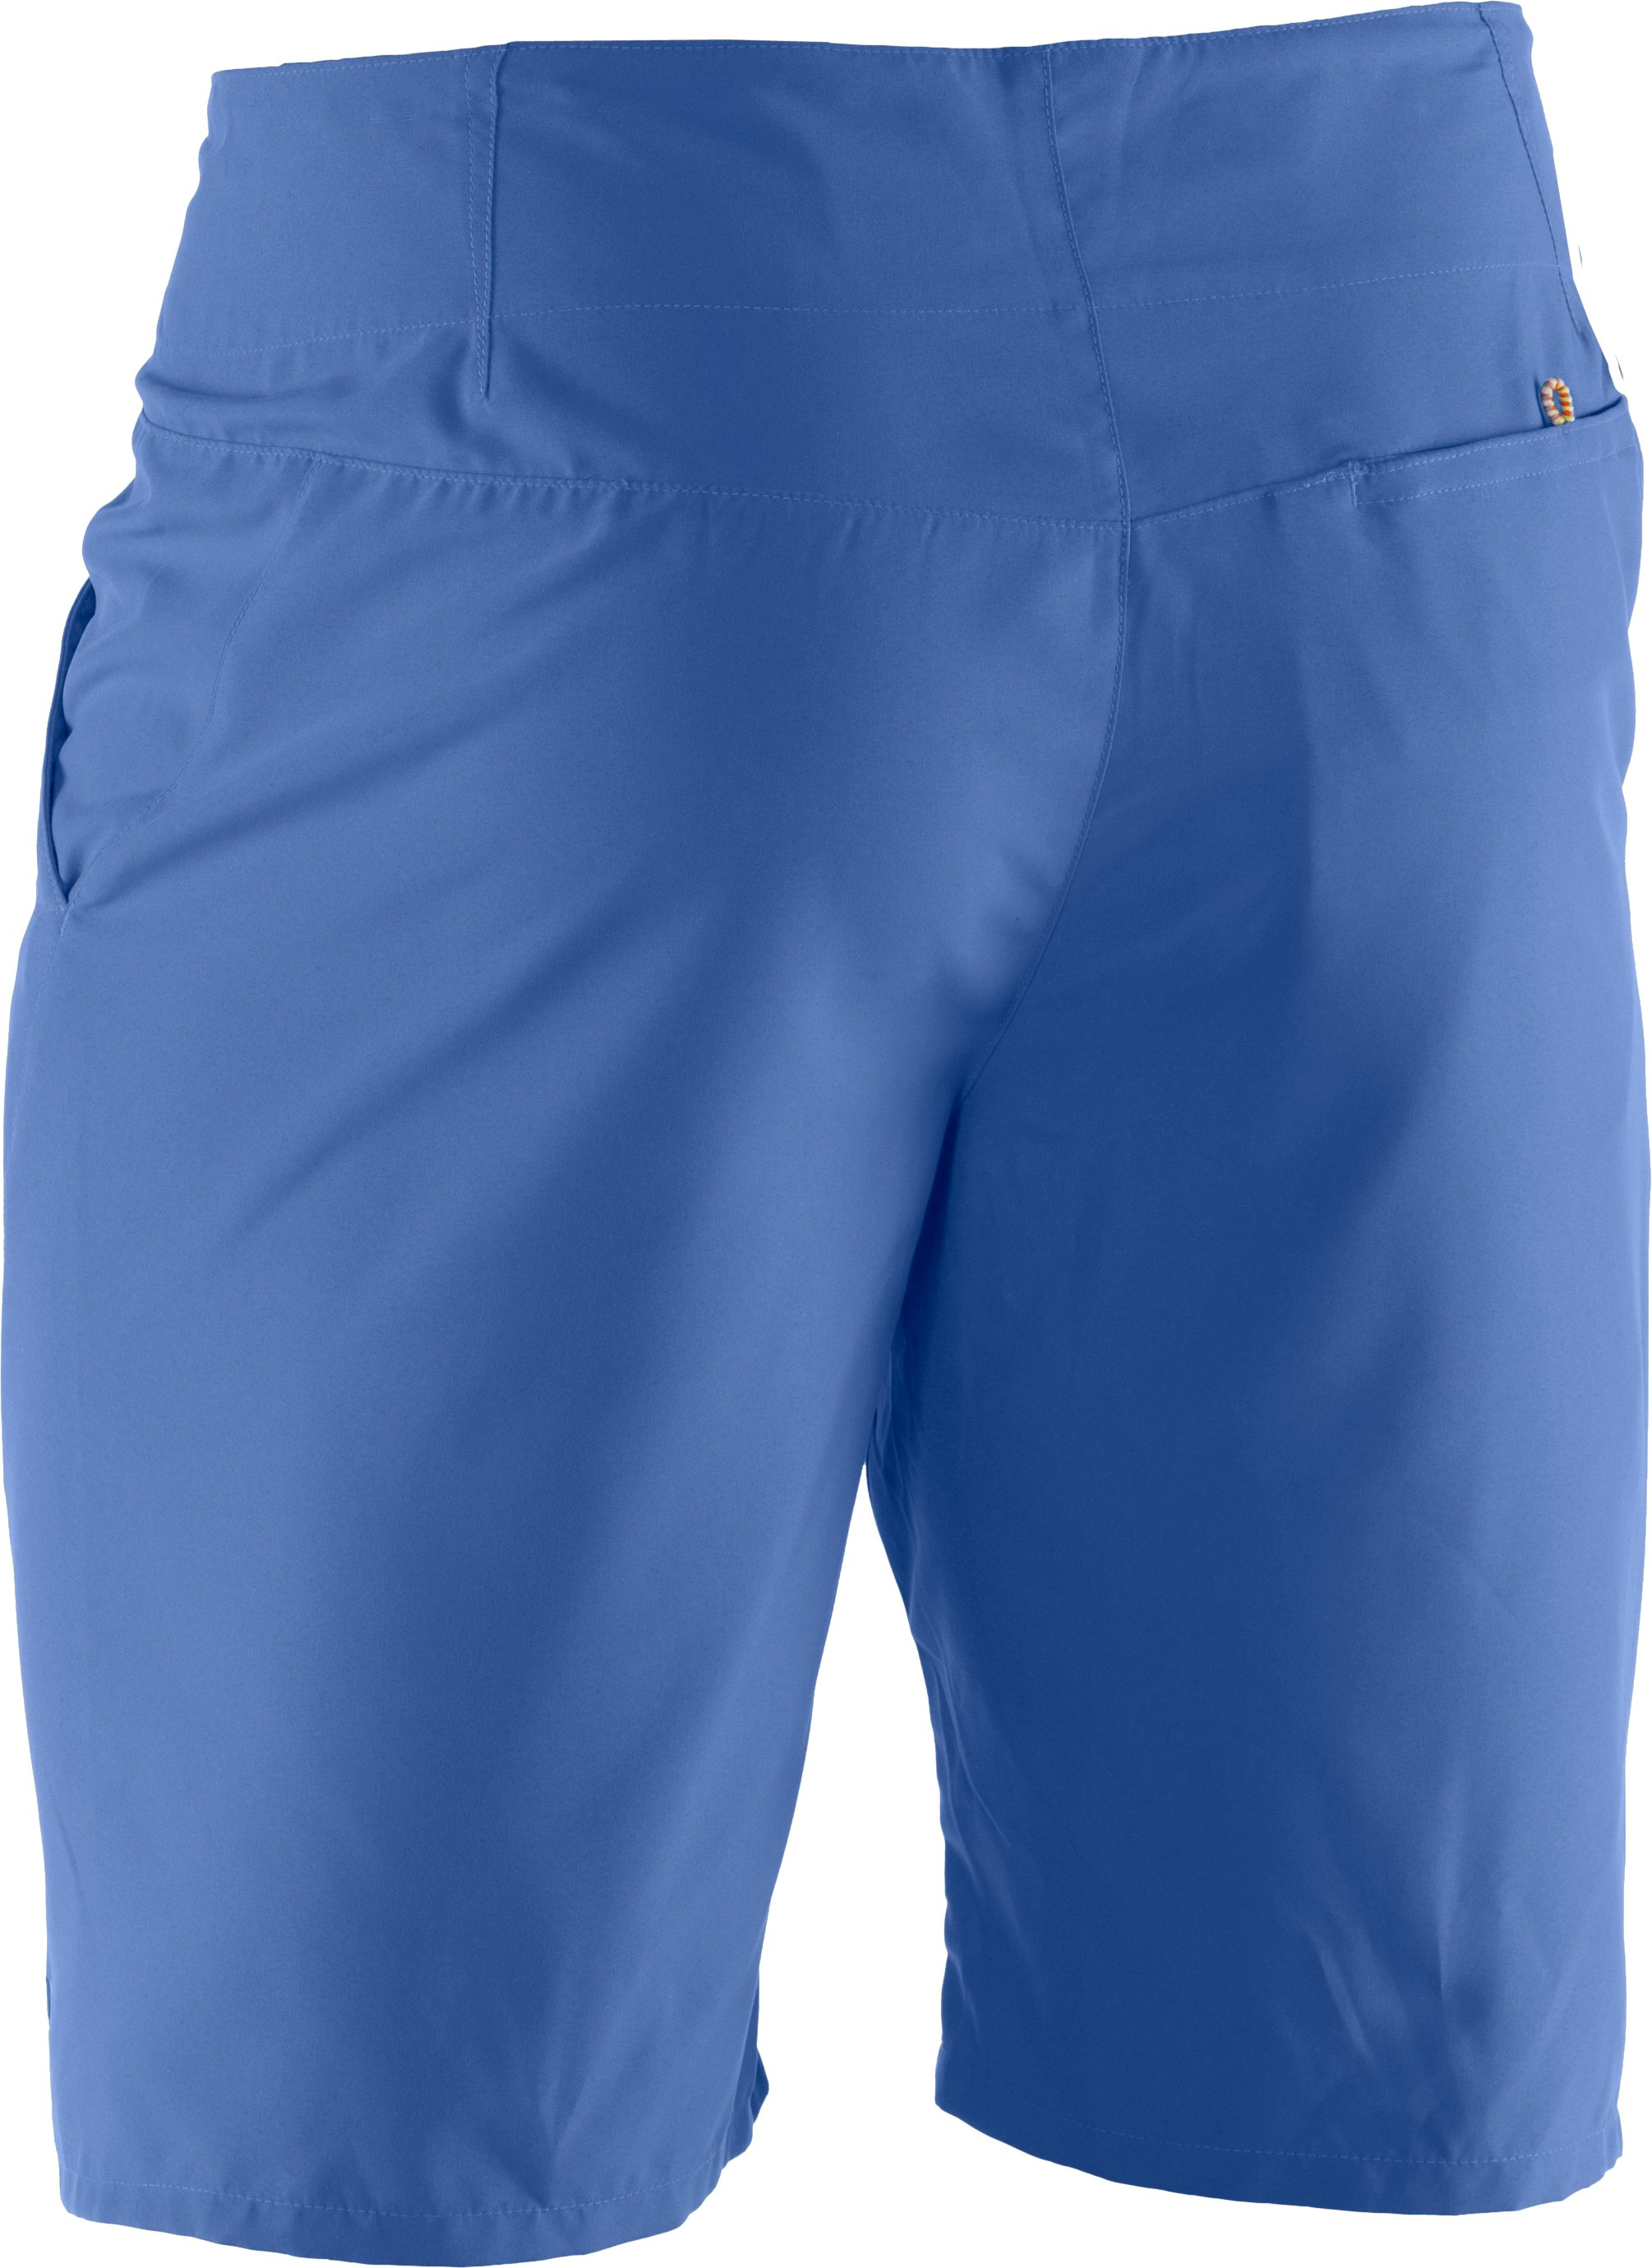 Men's UA Spinner Board Shorts, RIVER